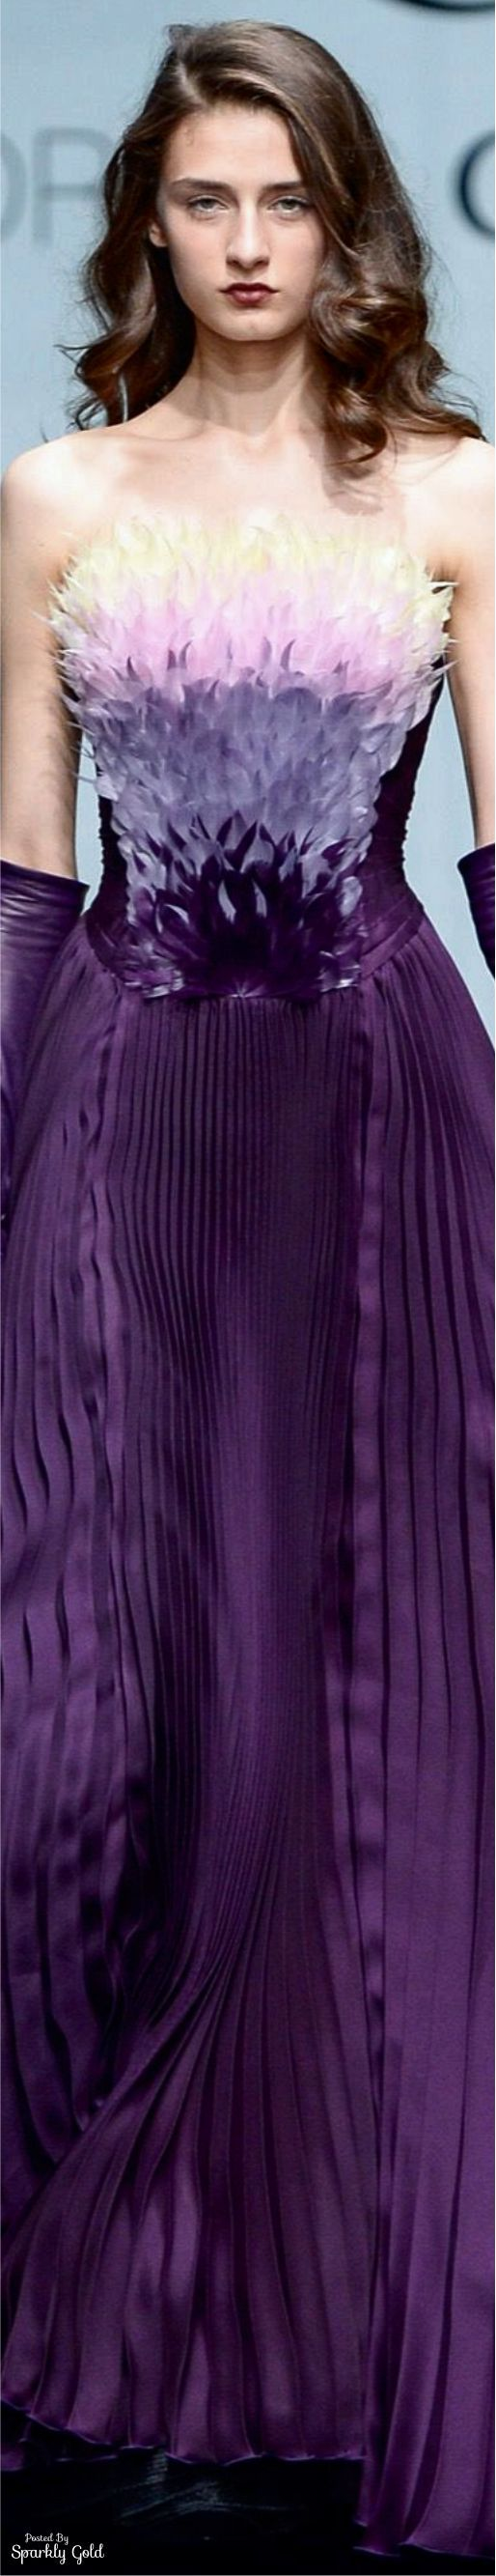 77 best Fashion: Georges Chakra images on Pinterest | Georges chakra ...